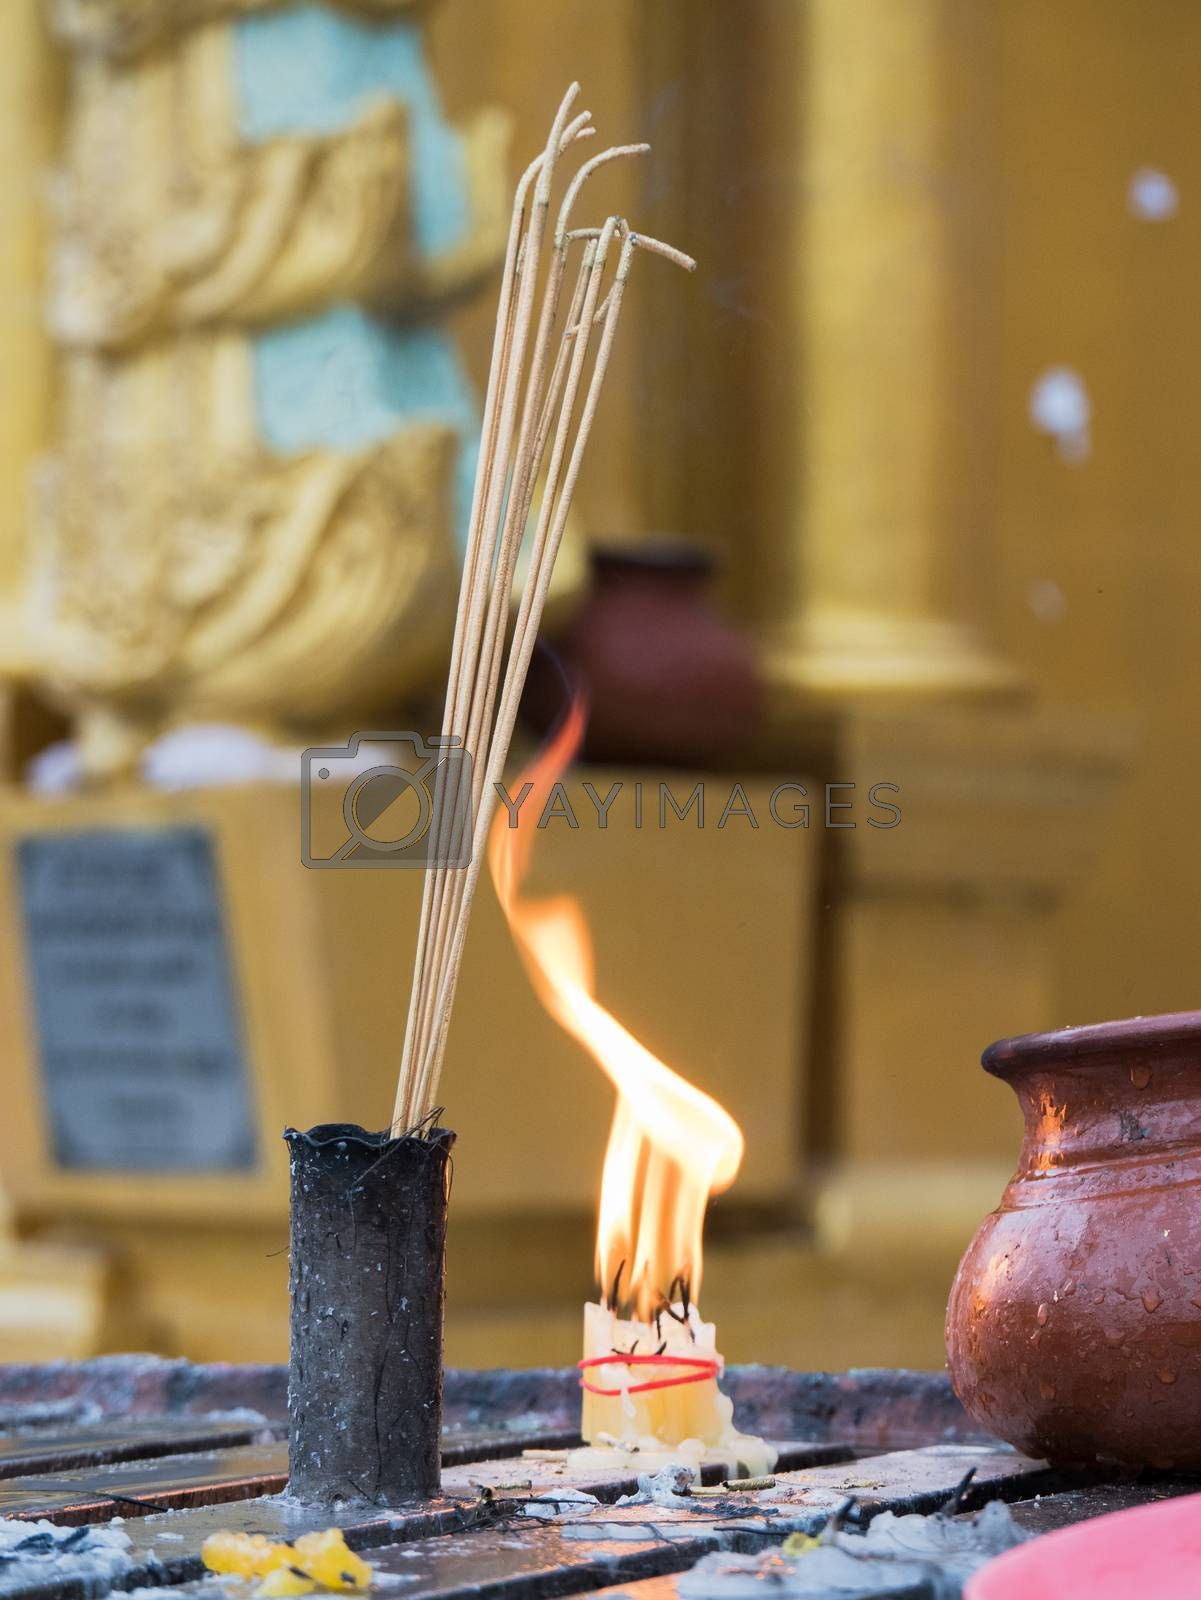 Joss sticks and a bundle of candles burning at dawn in front of a golden stupa at the Shwedagon Pagoda in Yangon, Myanmar. Shallow depth of field with the joss sticks in focus.